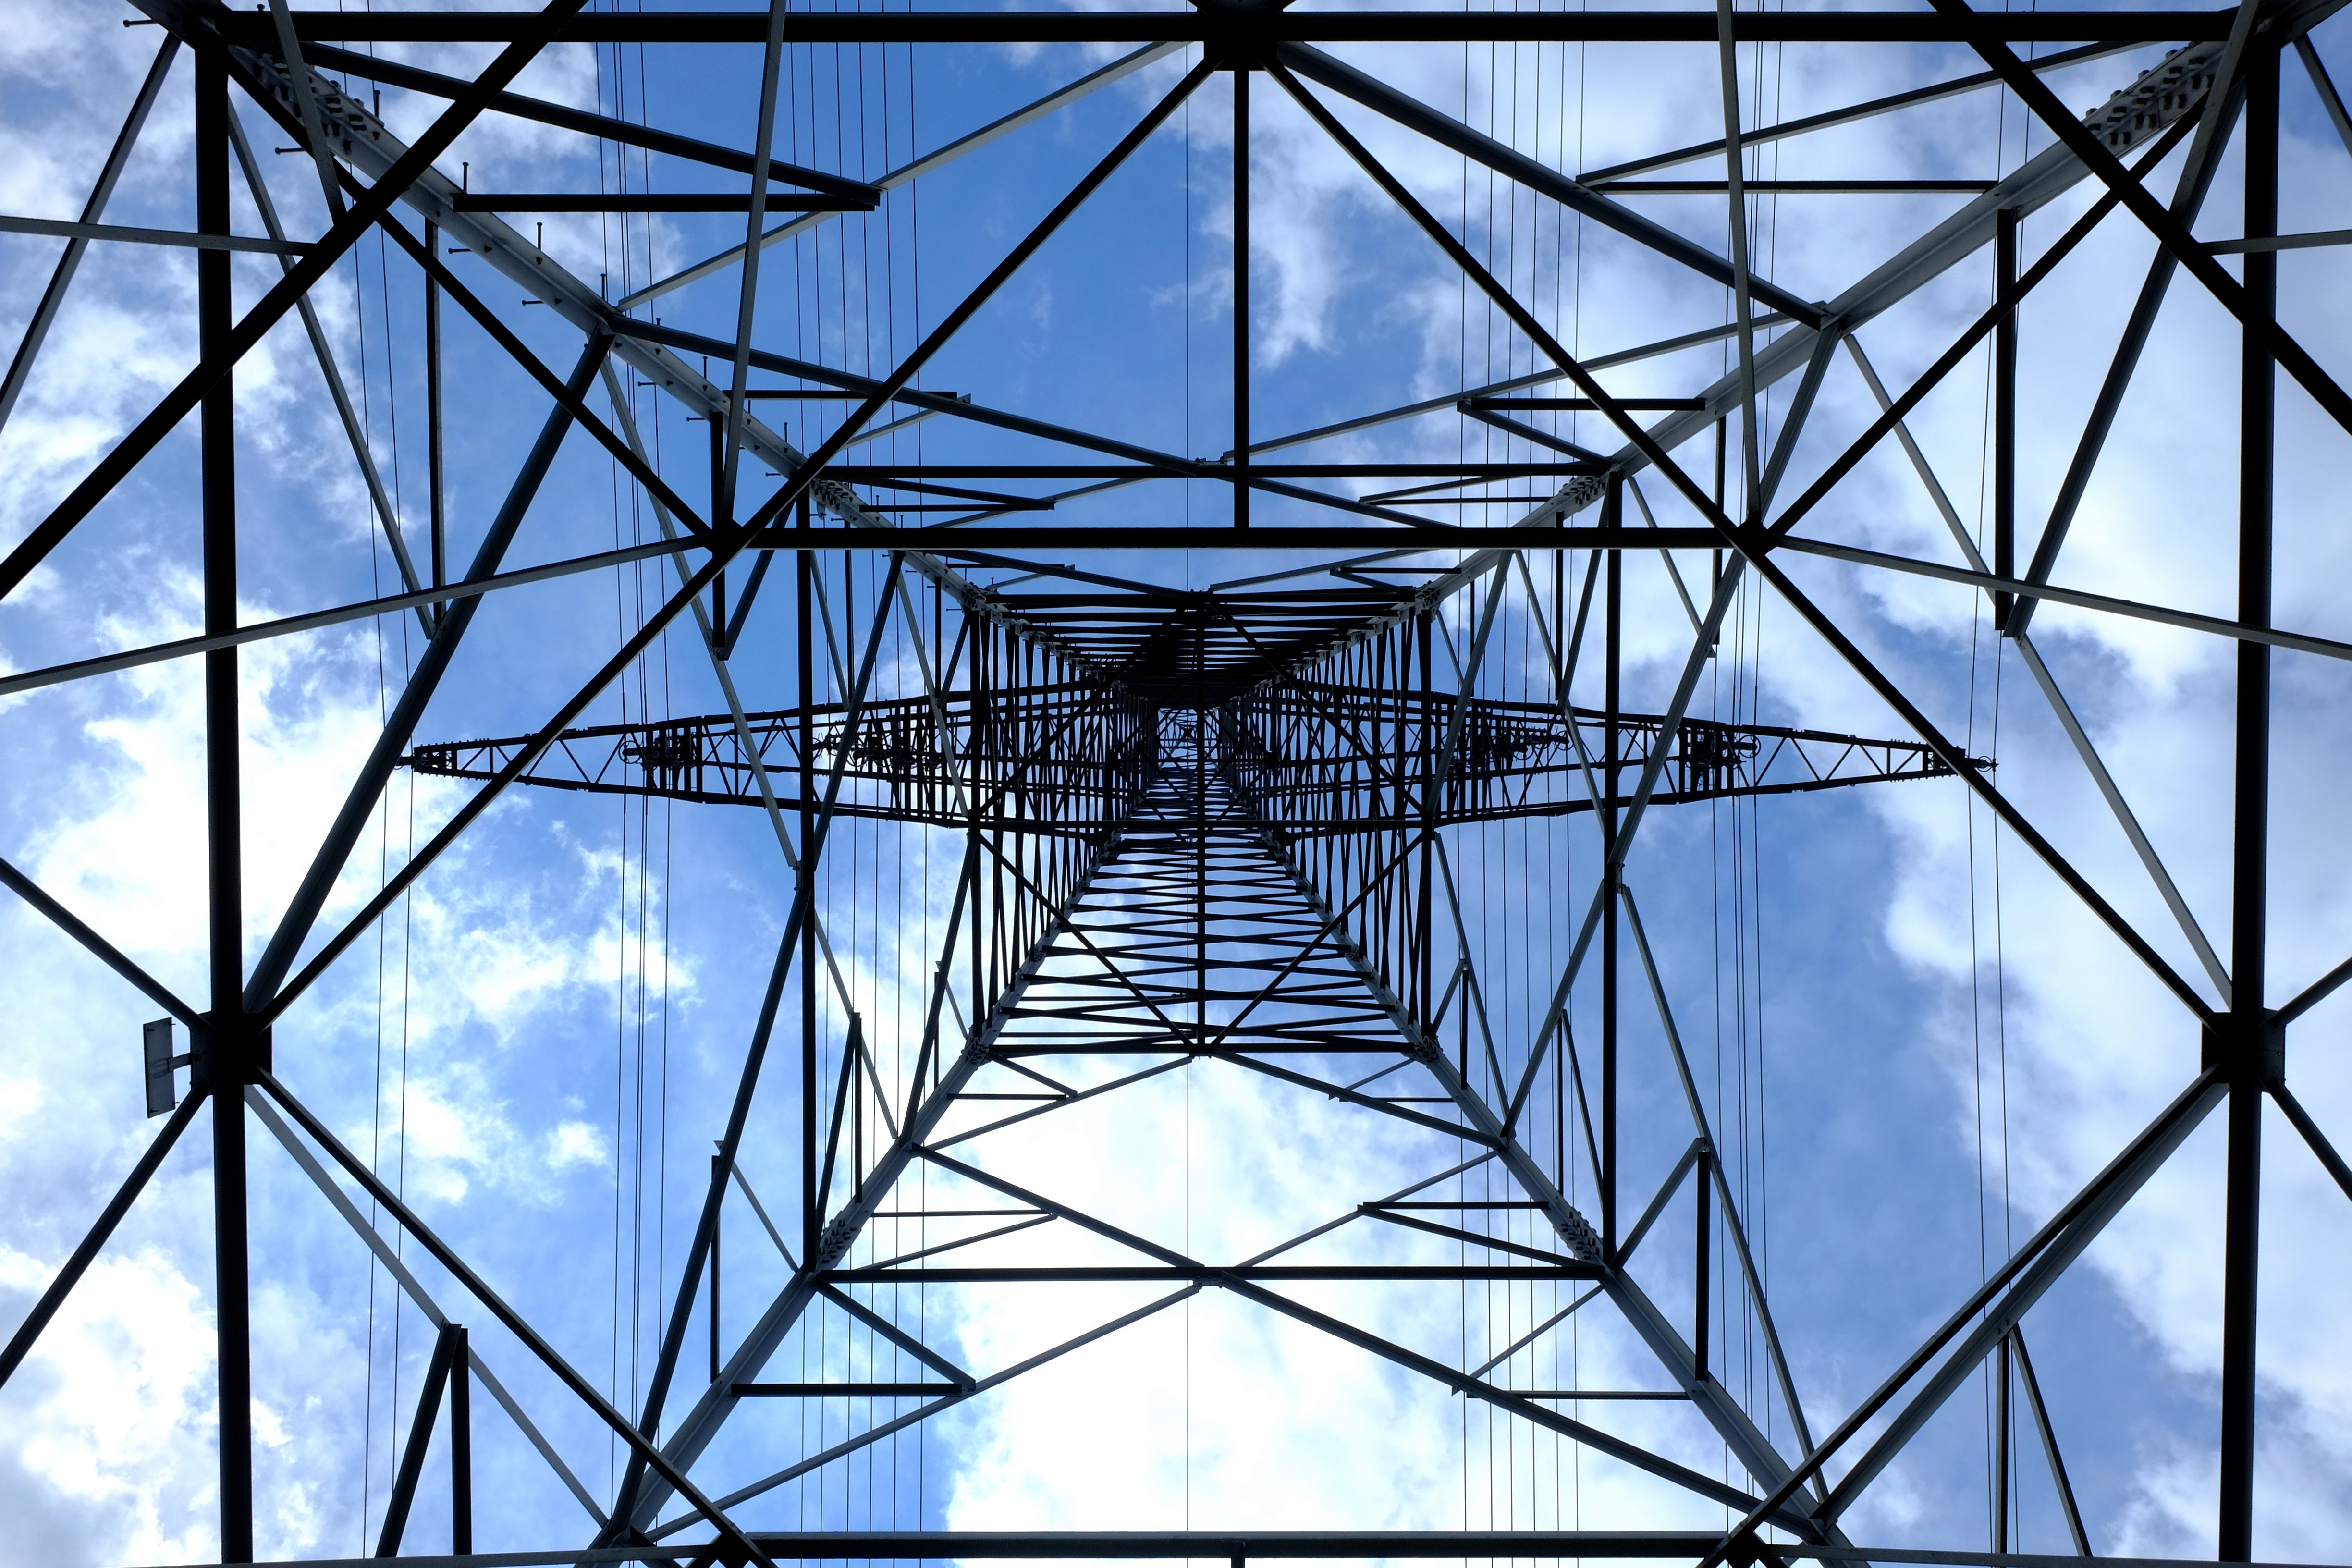 electric tower seen from below growing towards the sky